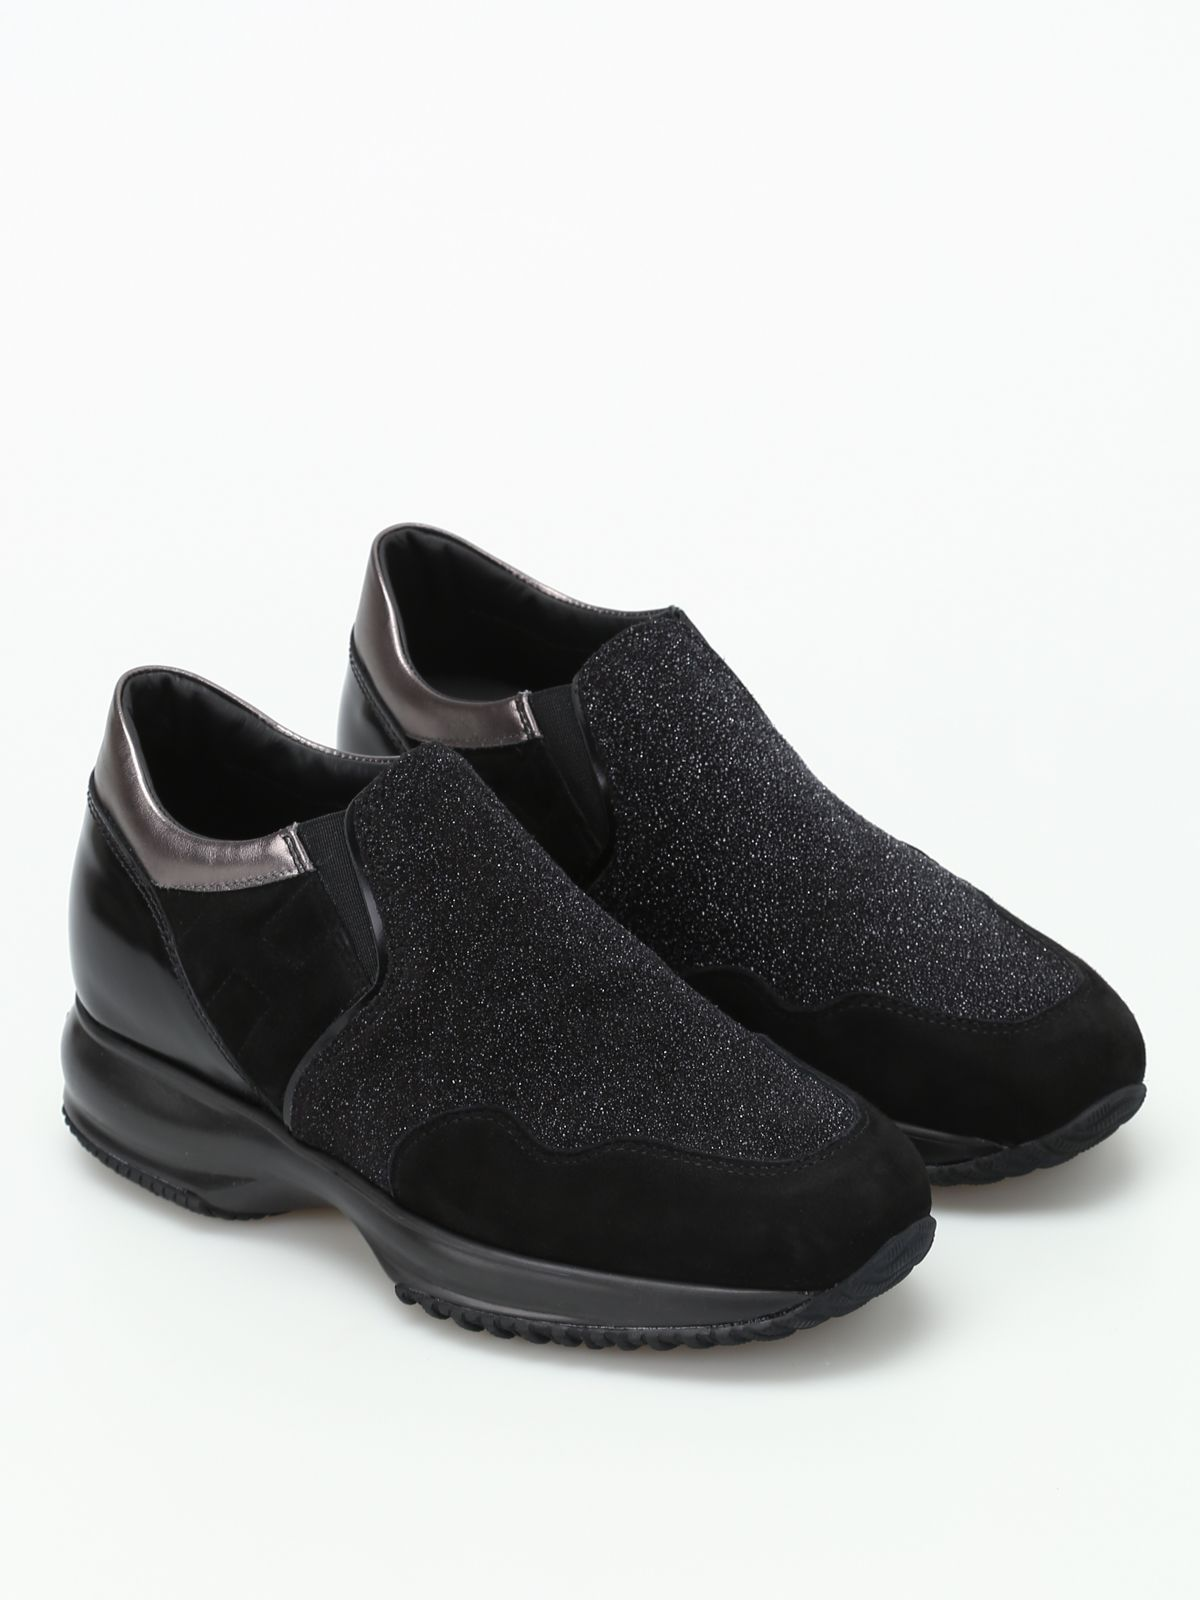 Hogan Interactive Slip-on Sneakers